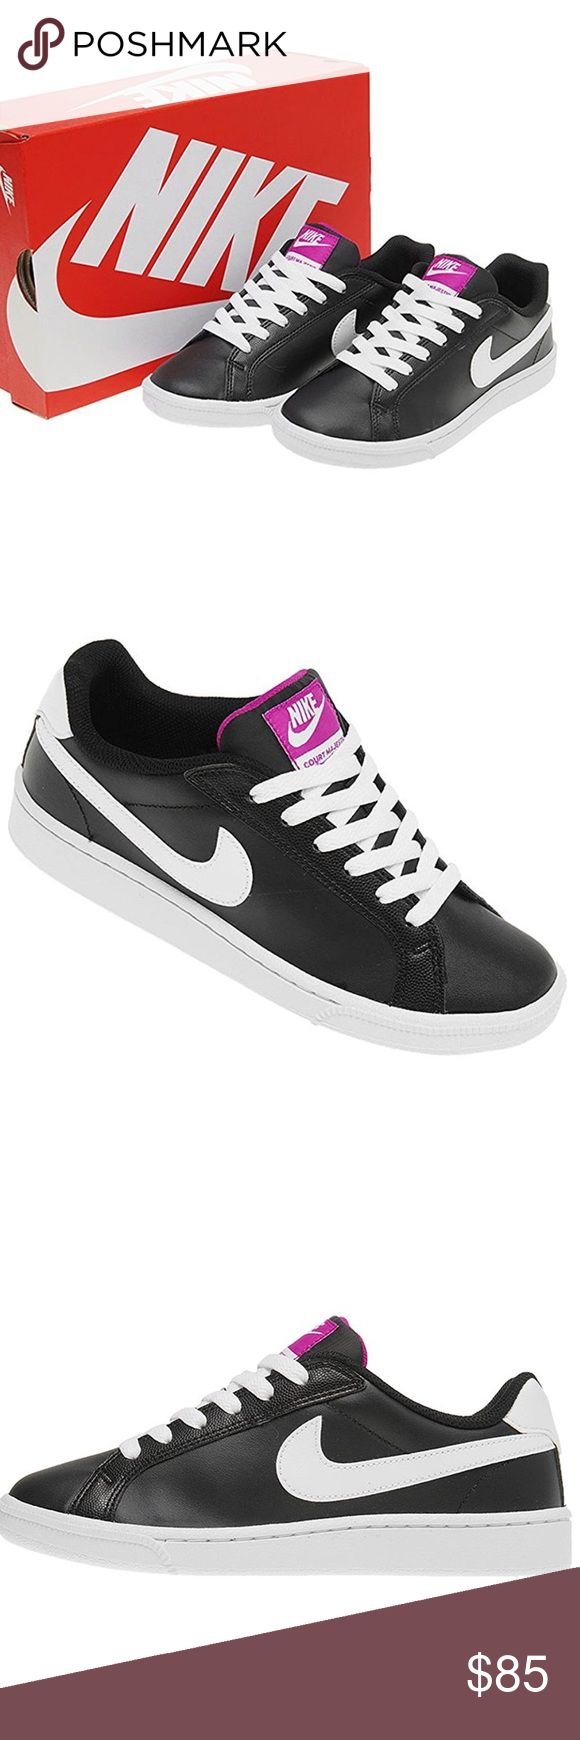 Nike COURT MAJESTIC Shoes Nike COURT MAJESTIC Shoes. ★Popular Nike Sneakers★  BLACK/WHITE, PURPLE, Product material: Synthetic leather/Synthetic fiber. Only wore a few times. Still have box. Nike Shoes